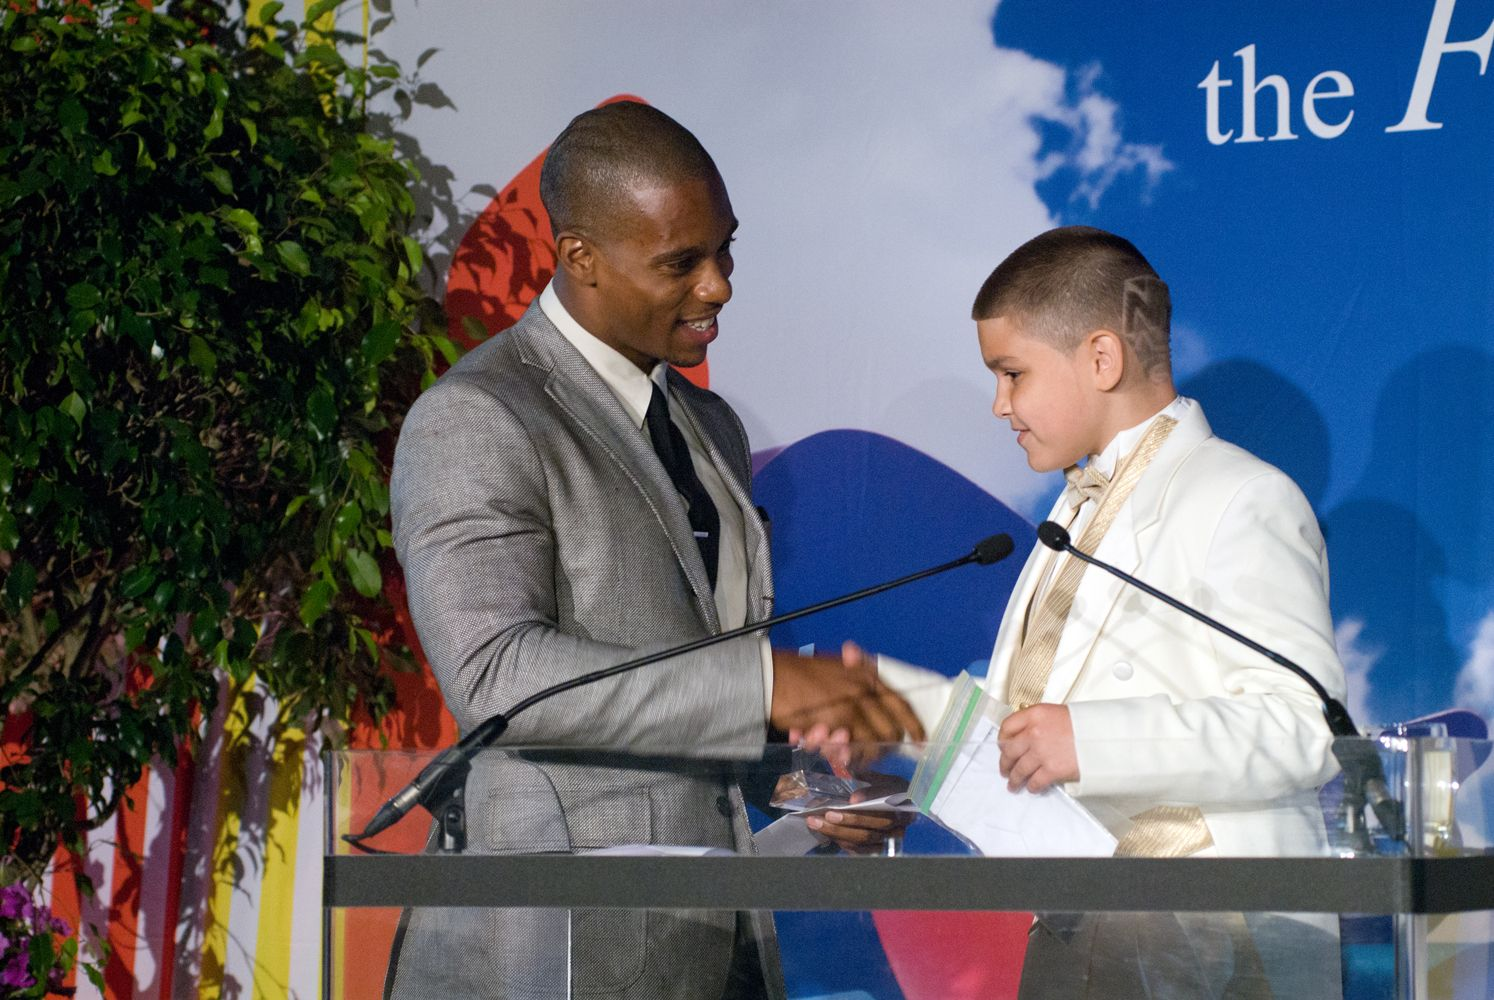 Honoree Victor Cruz thanking Fresh Air child Joseph for